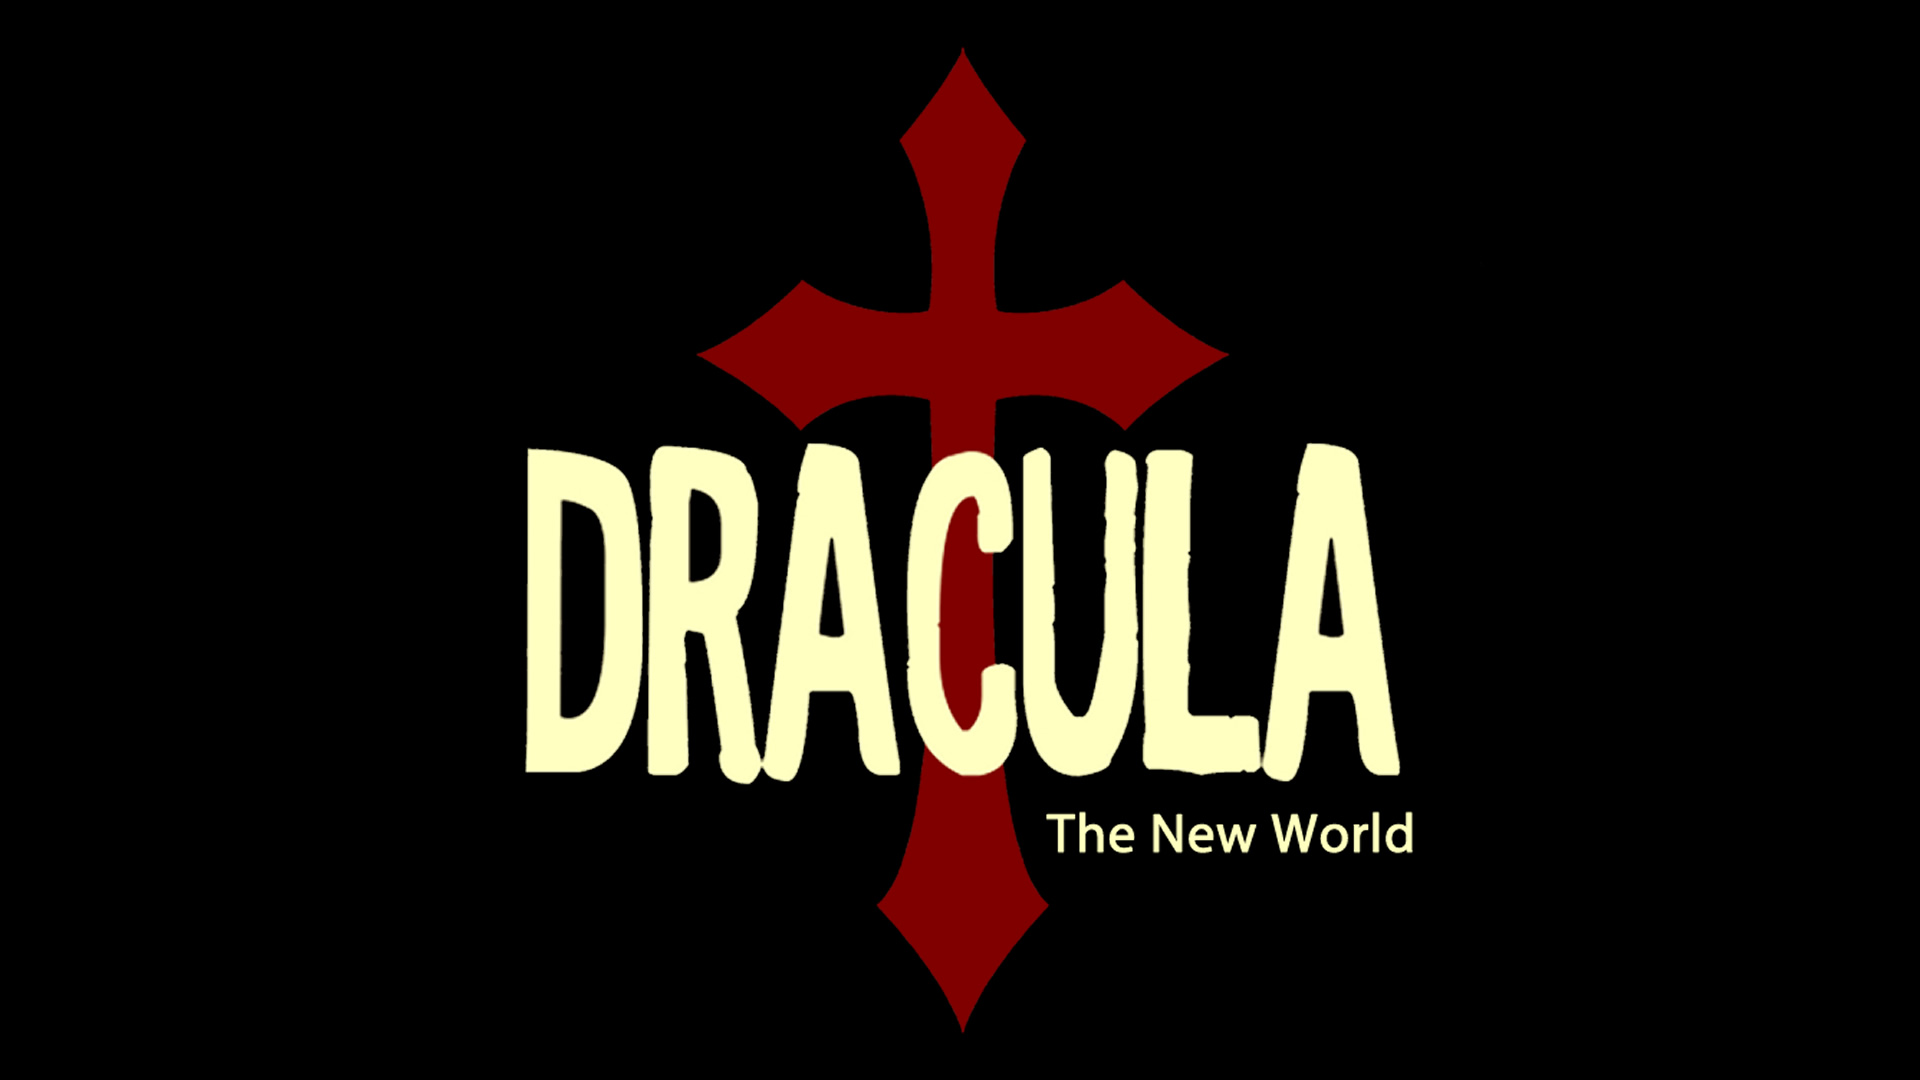 Dracula: The New World